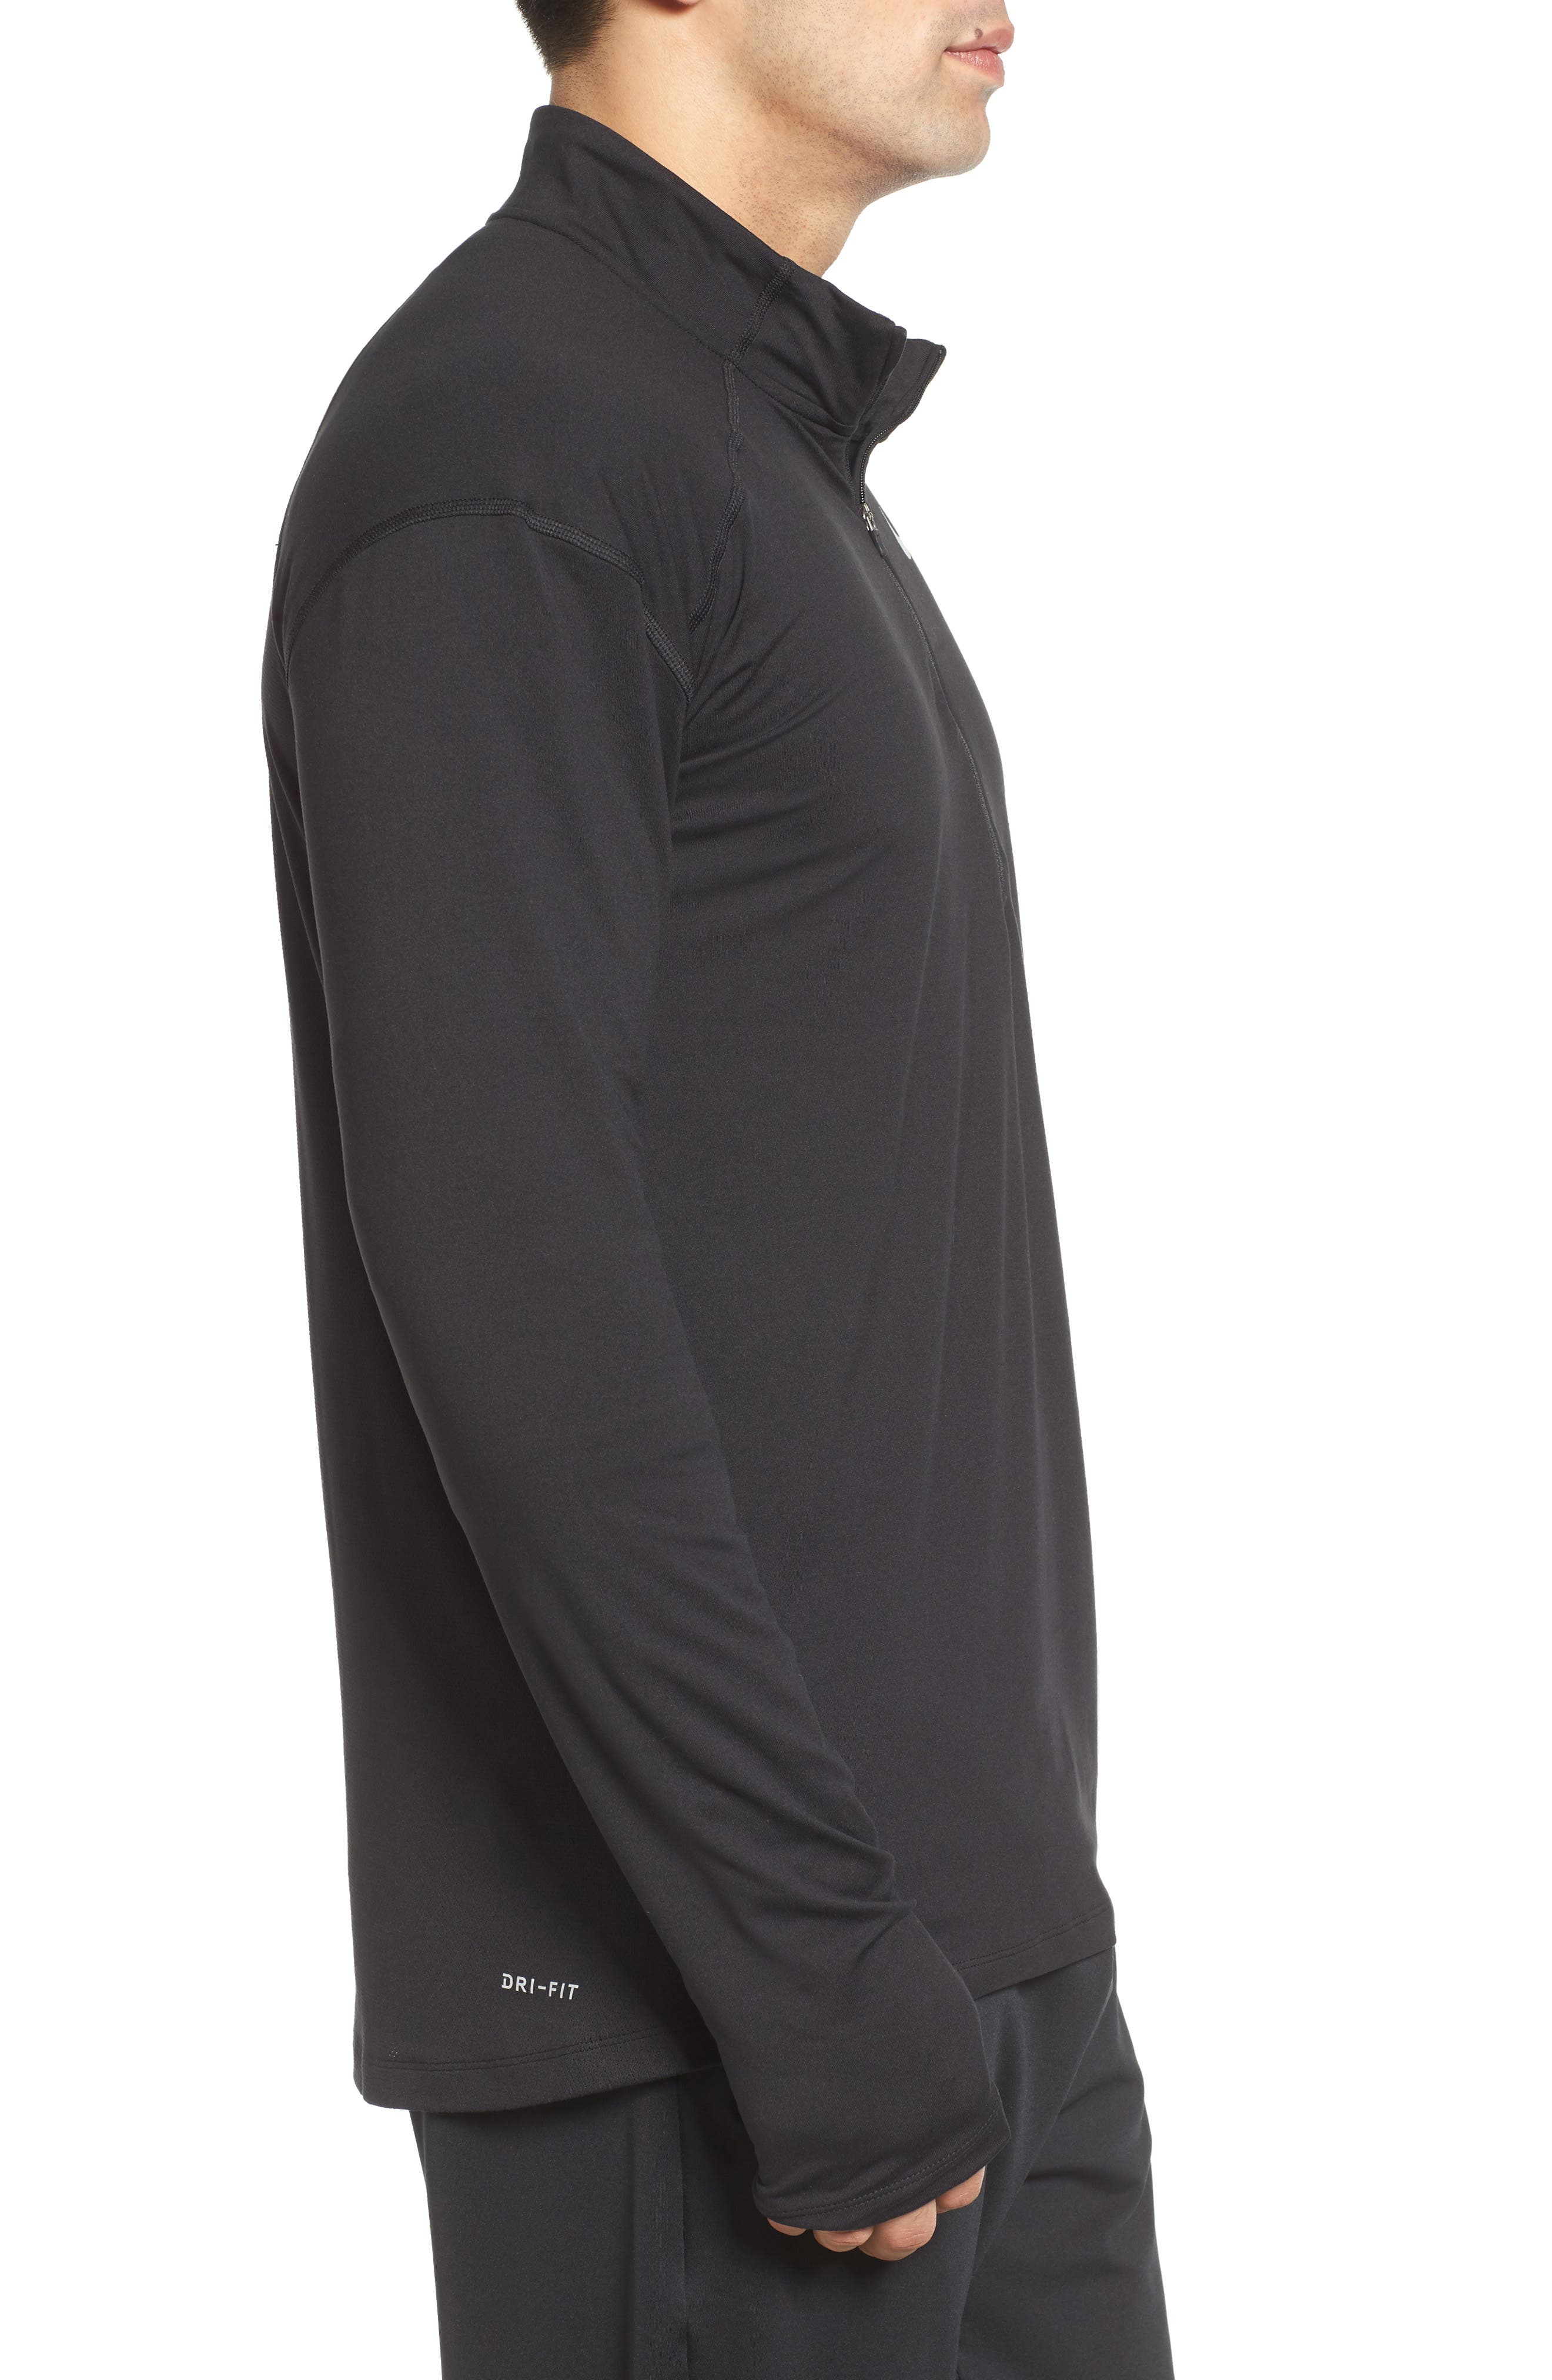 Dry Element Running Top,                             Alternate thumbnail 3, color,                             BLACK